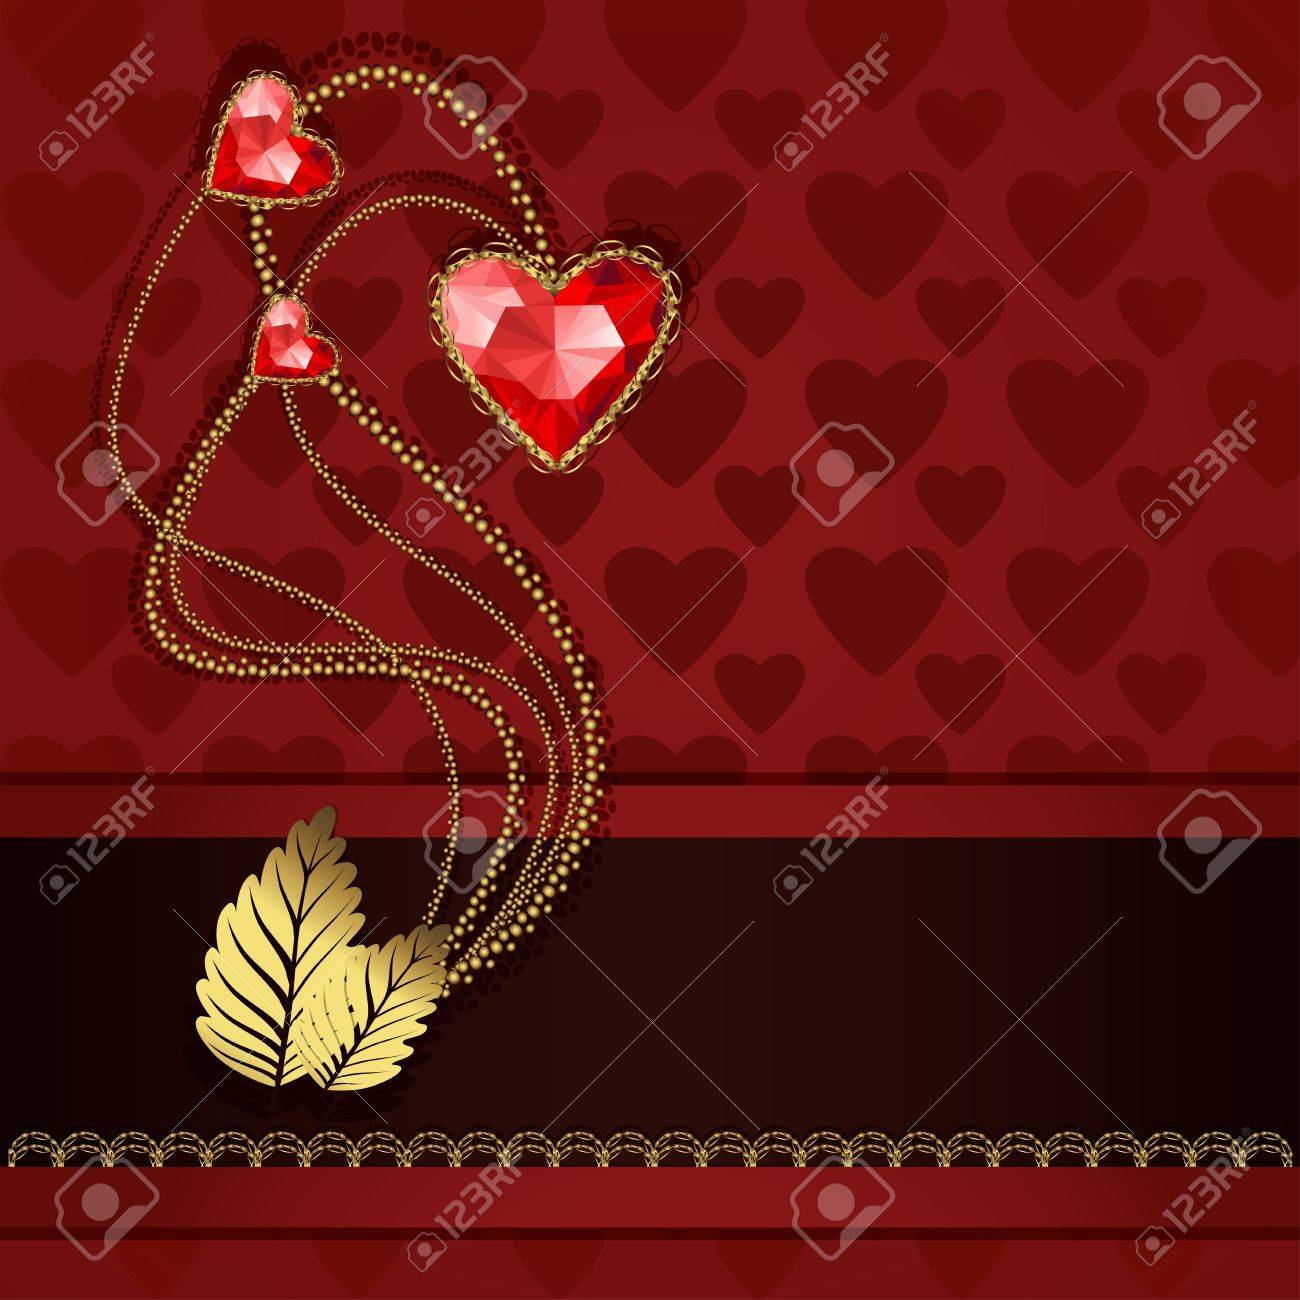 Beautiful three red diamond hearts and gold ornaments on red background Stock Vector - 17504406